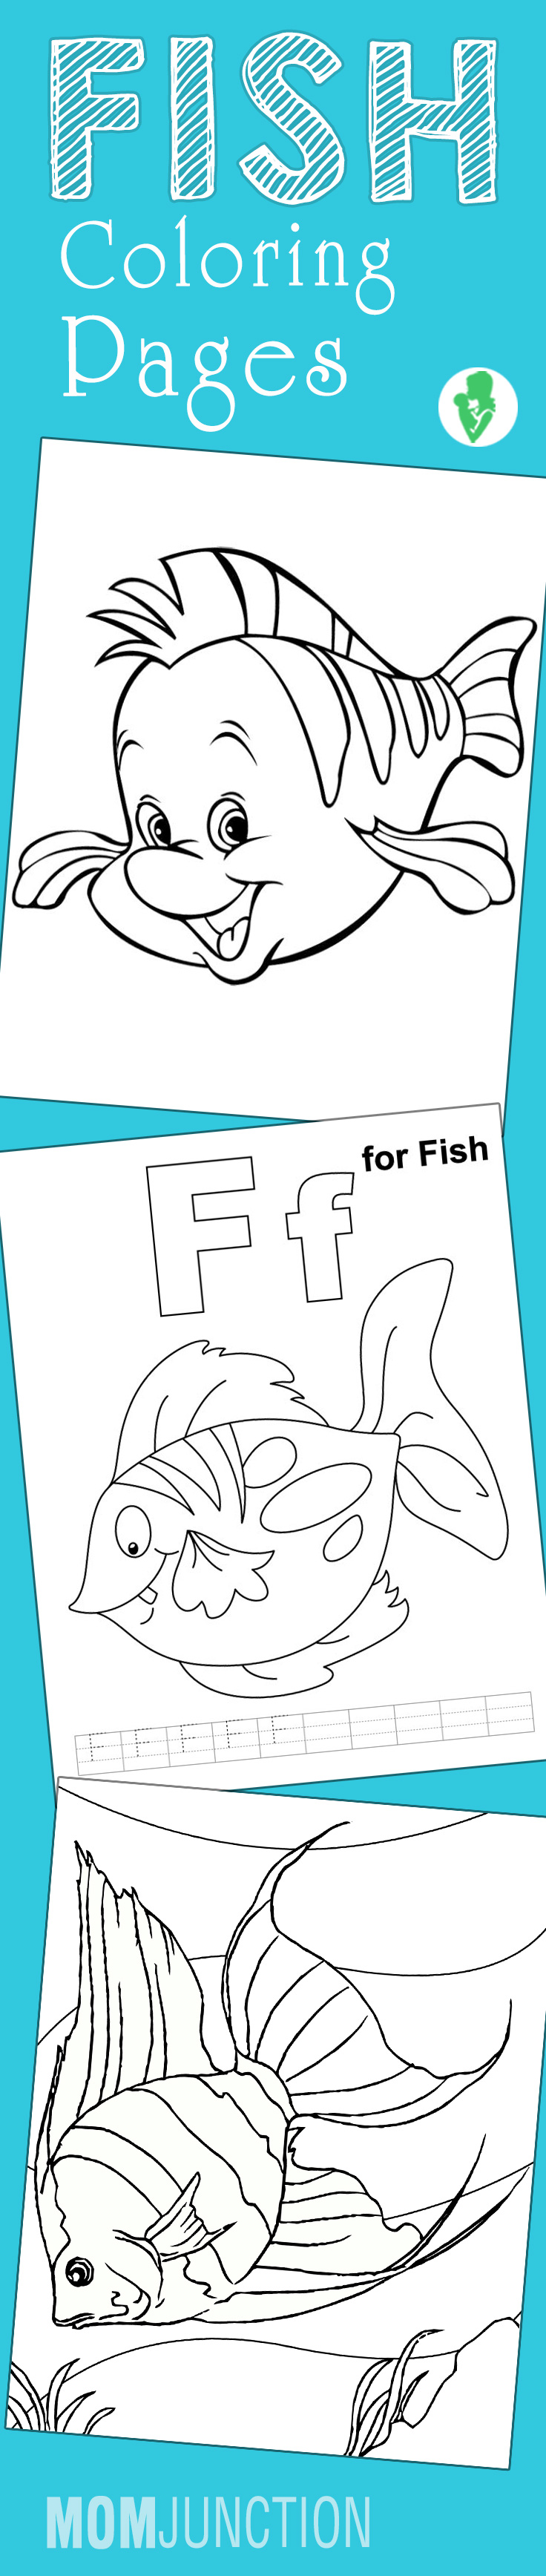 Coloring pages for young learners - Coloring Pages For Young Learners 1